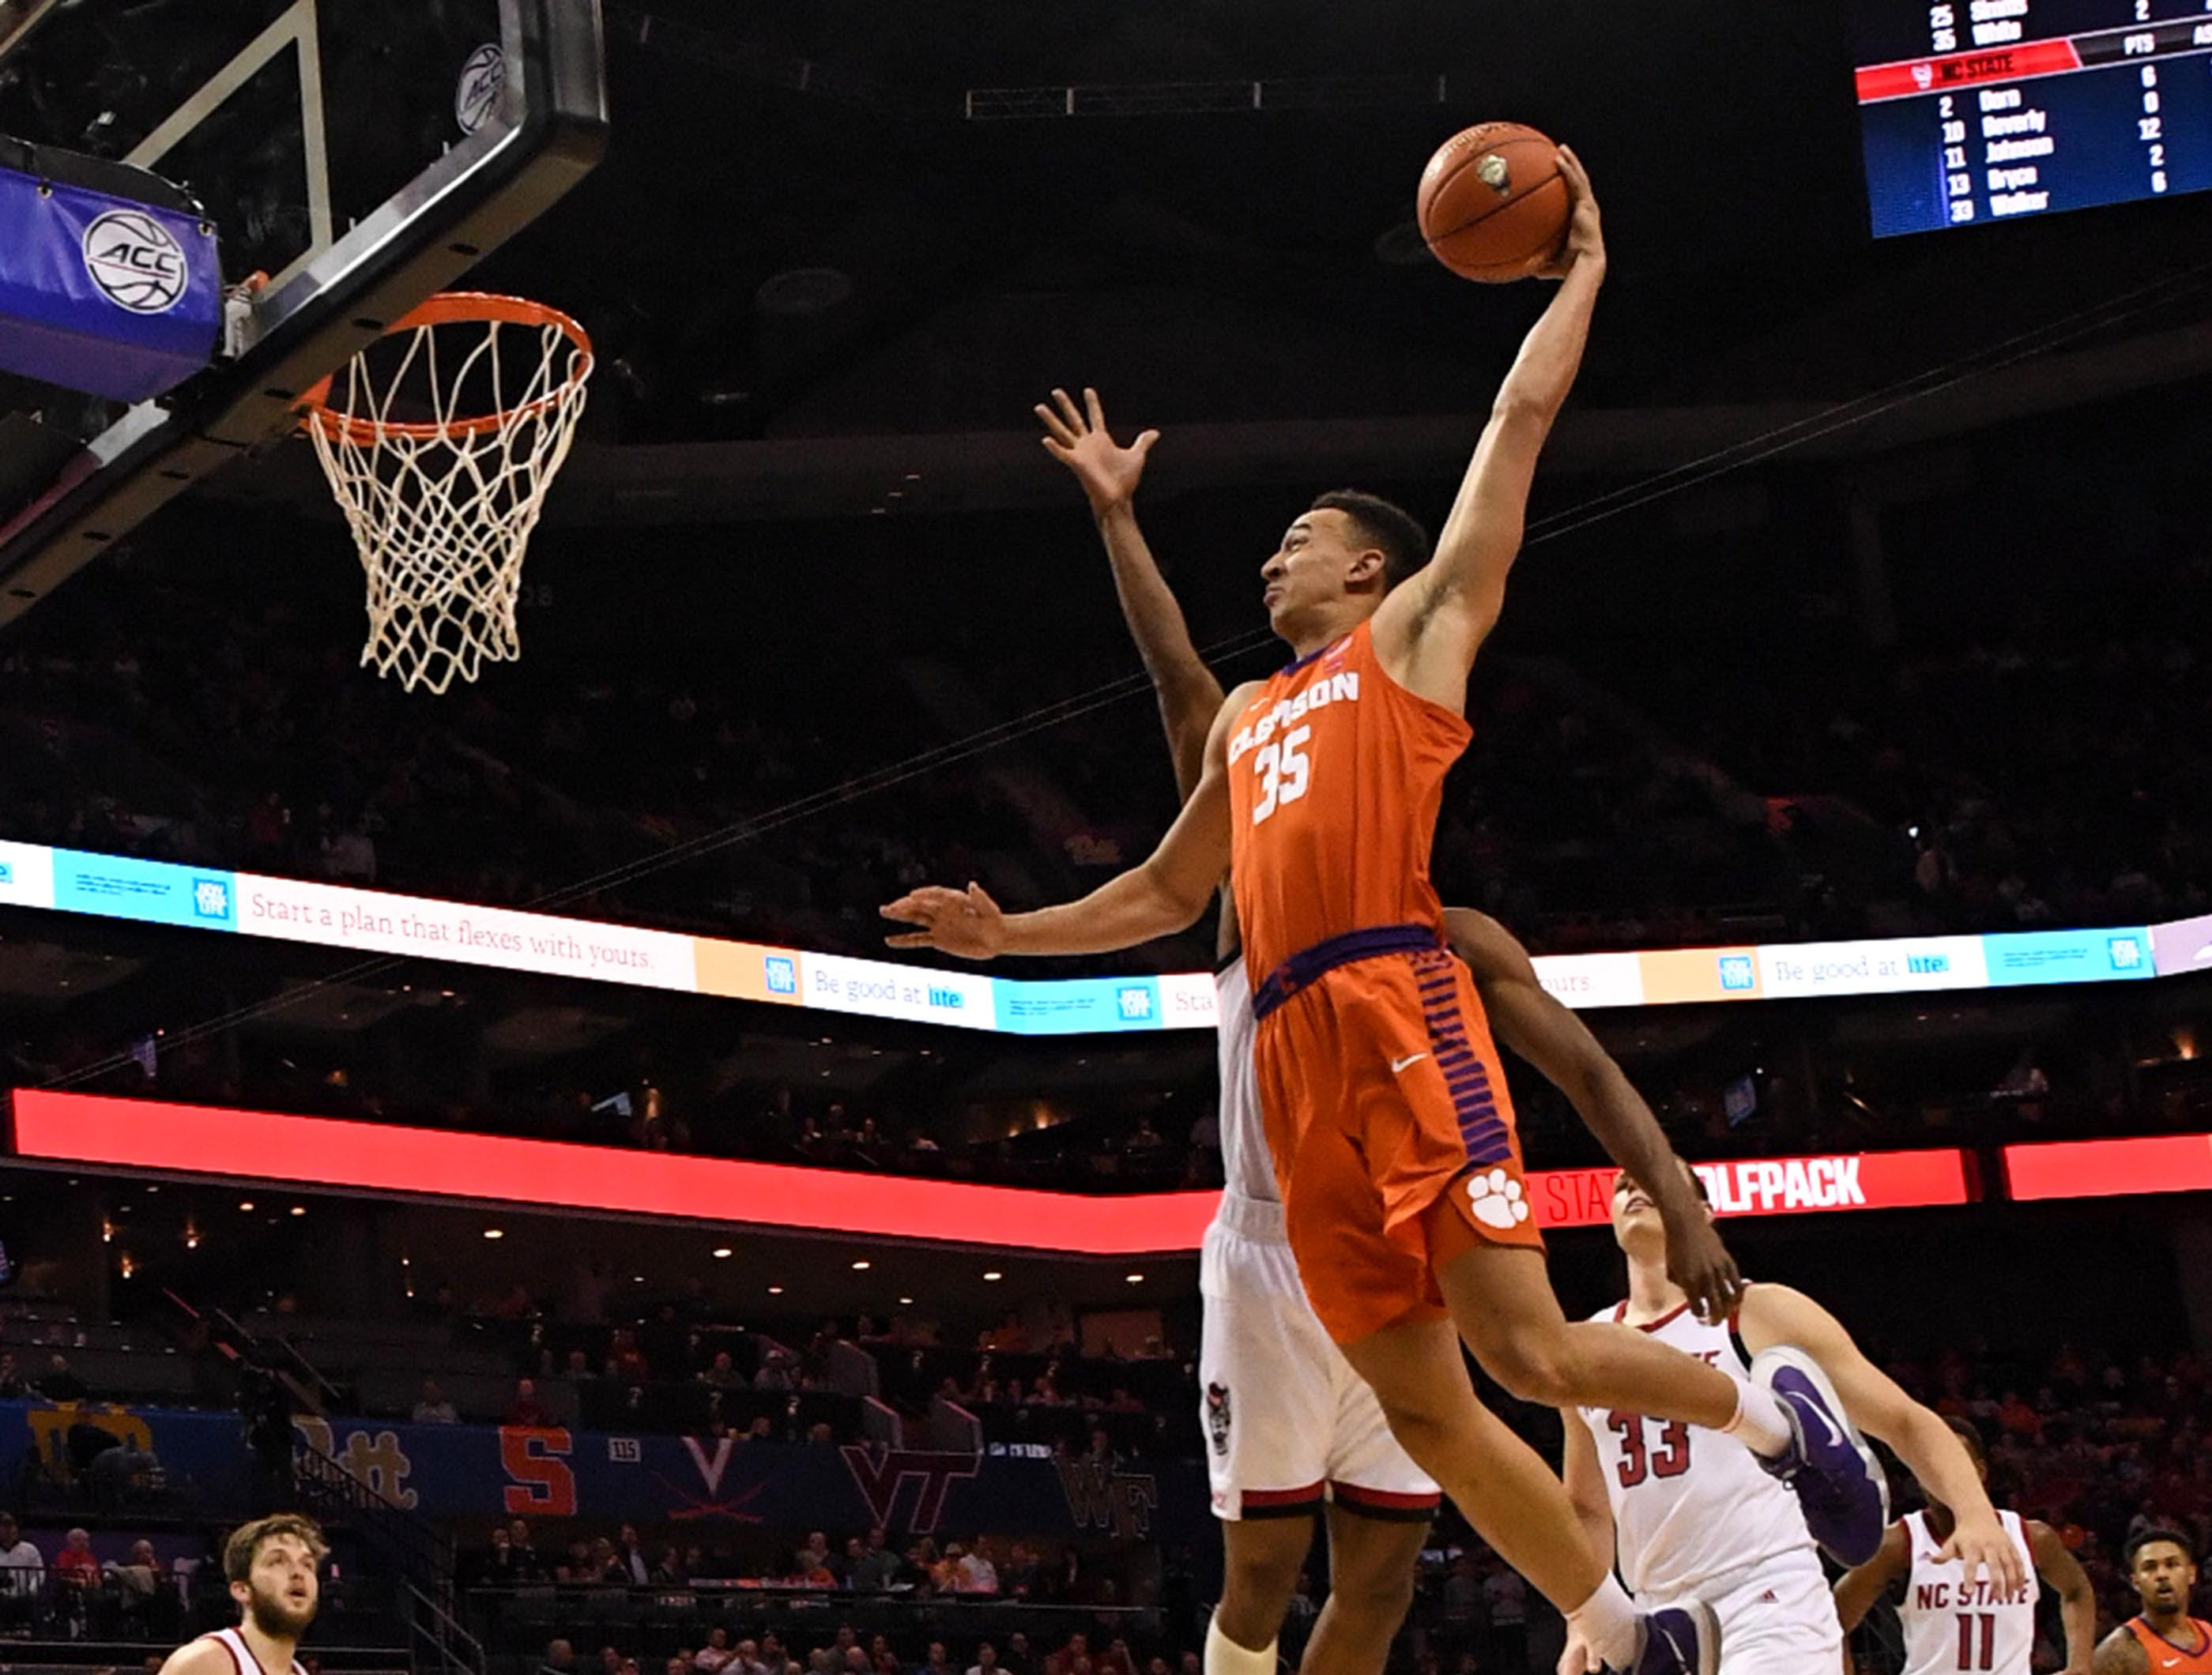 Clemson forward Javan White (35) dunks during the second half at the Spectrum Center in Charlotte, N.C. Tuesday, March 12, 2019.